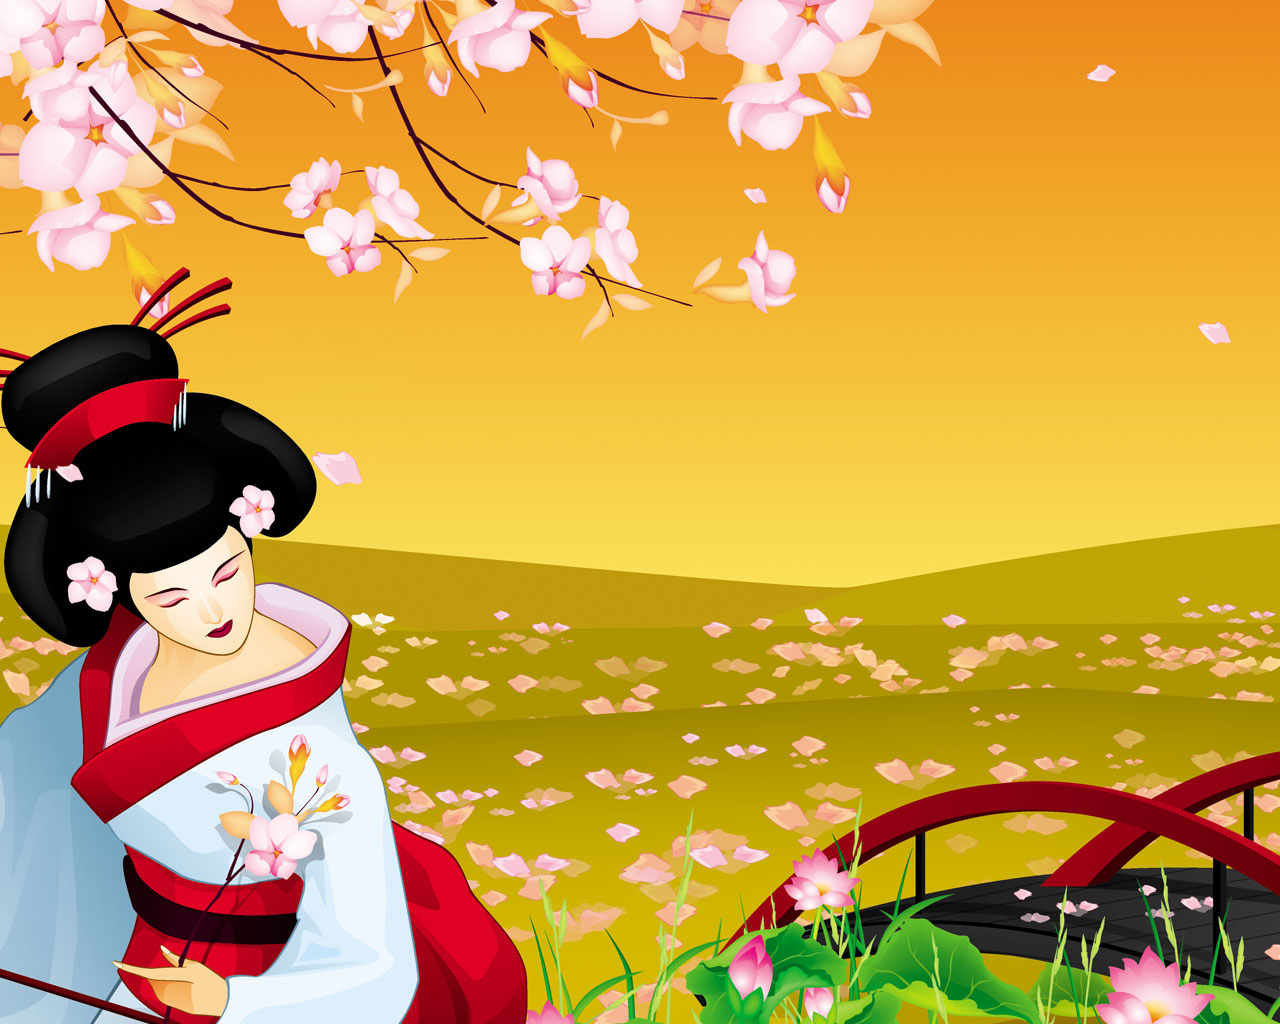 Japan Wallpapers and Images Japanese Geisha Wallpapers and 1280x1024